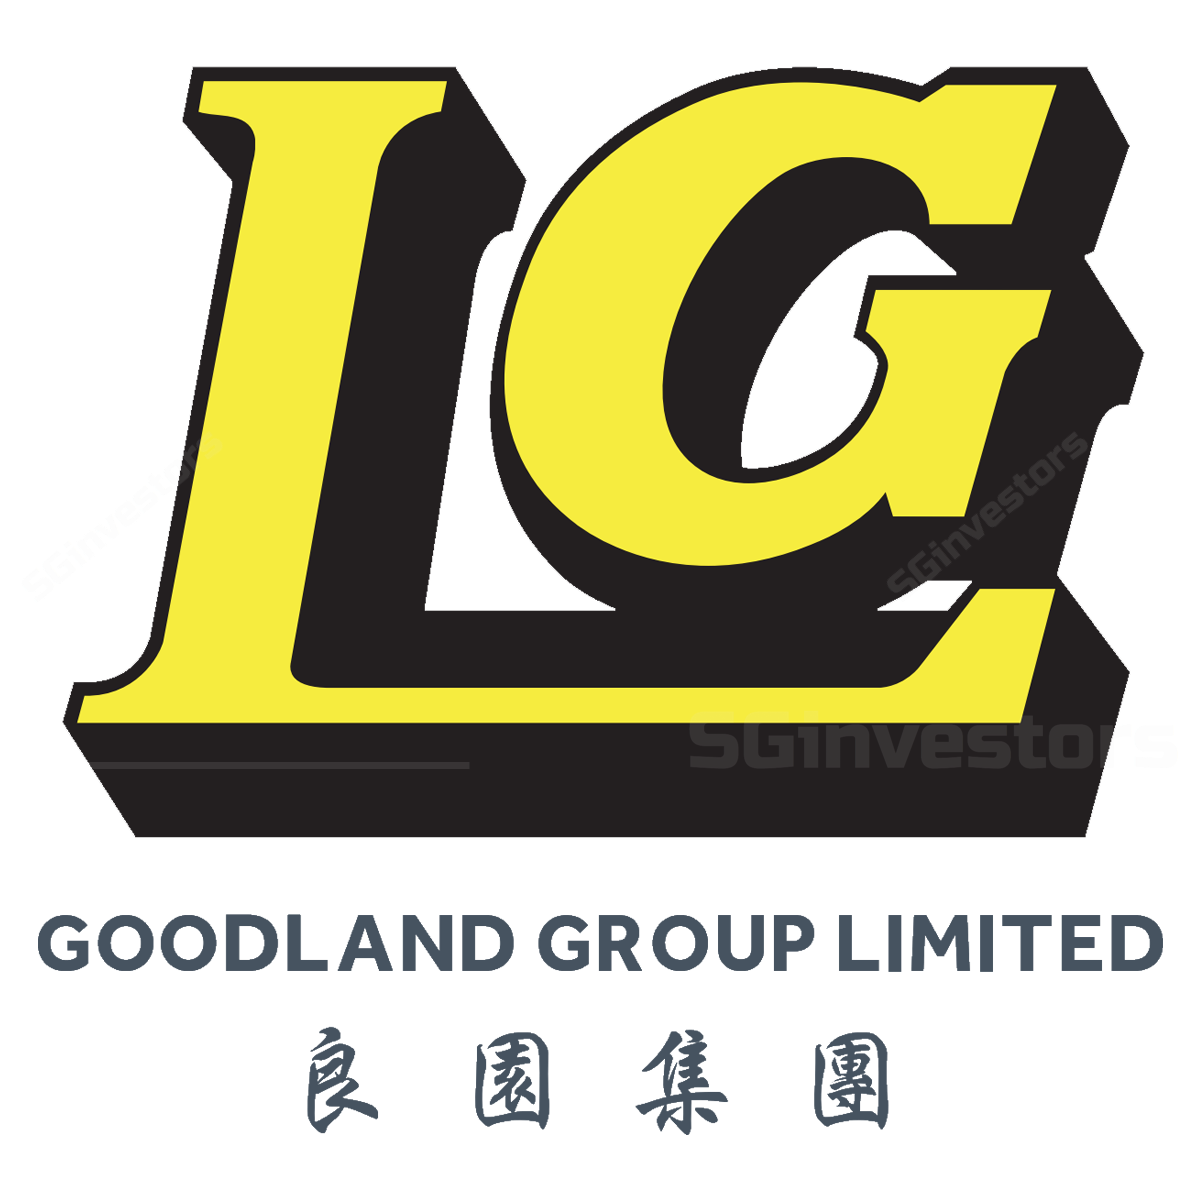 GOODLAND GROUP LIMITED (SGX:5PC) @ SGinvestors.io